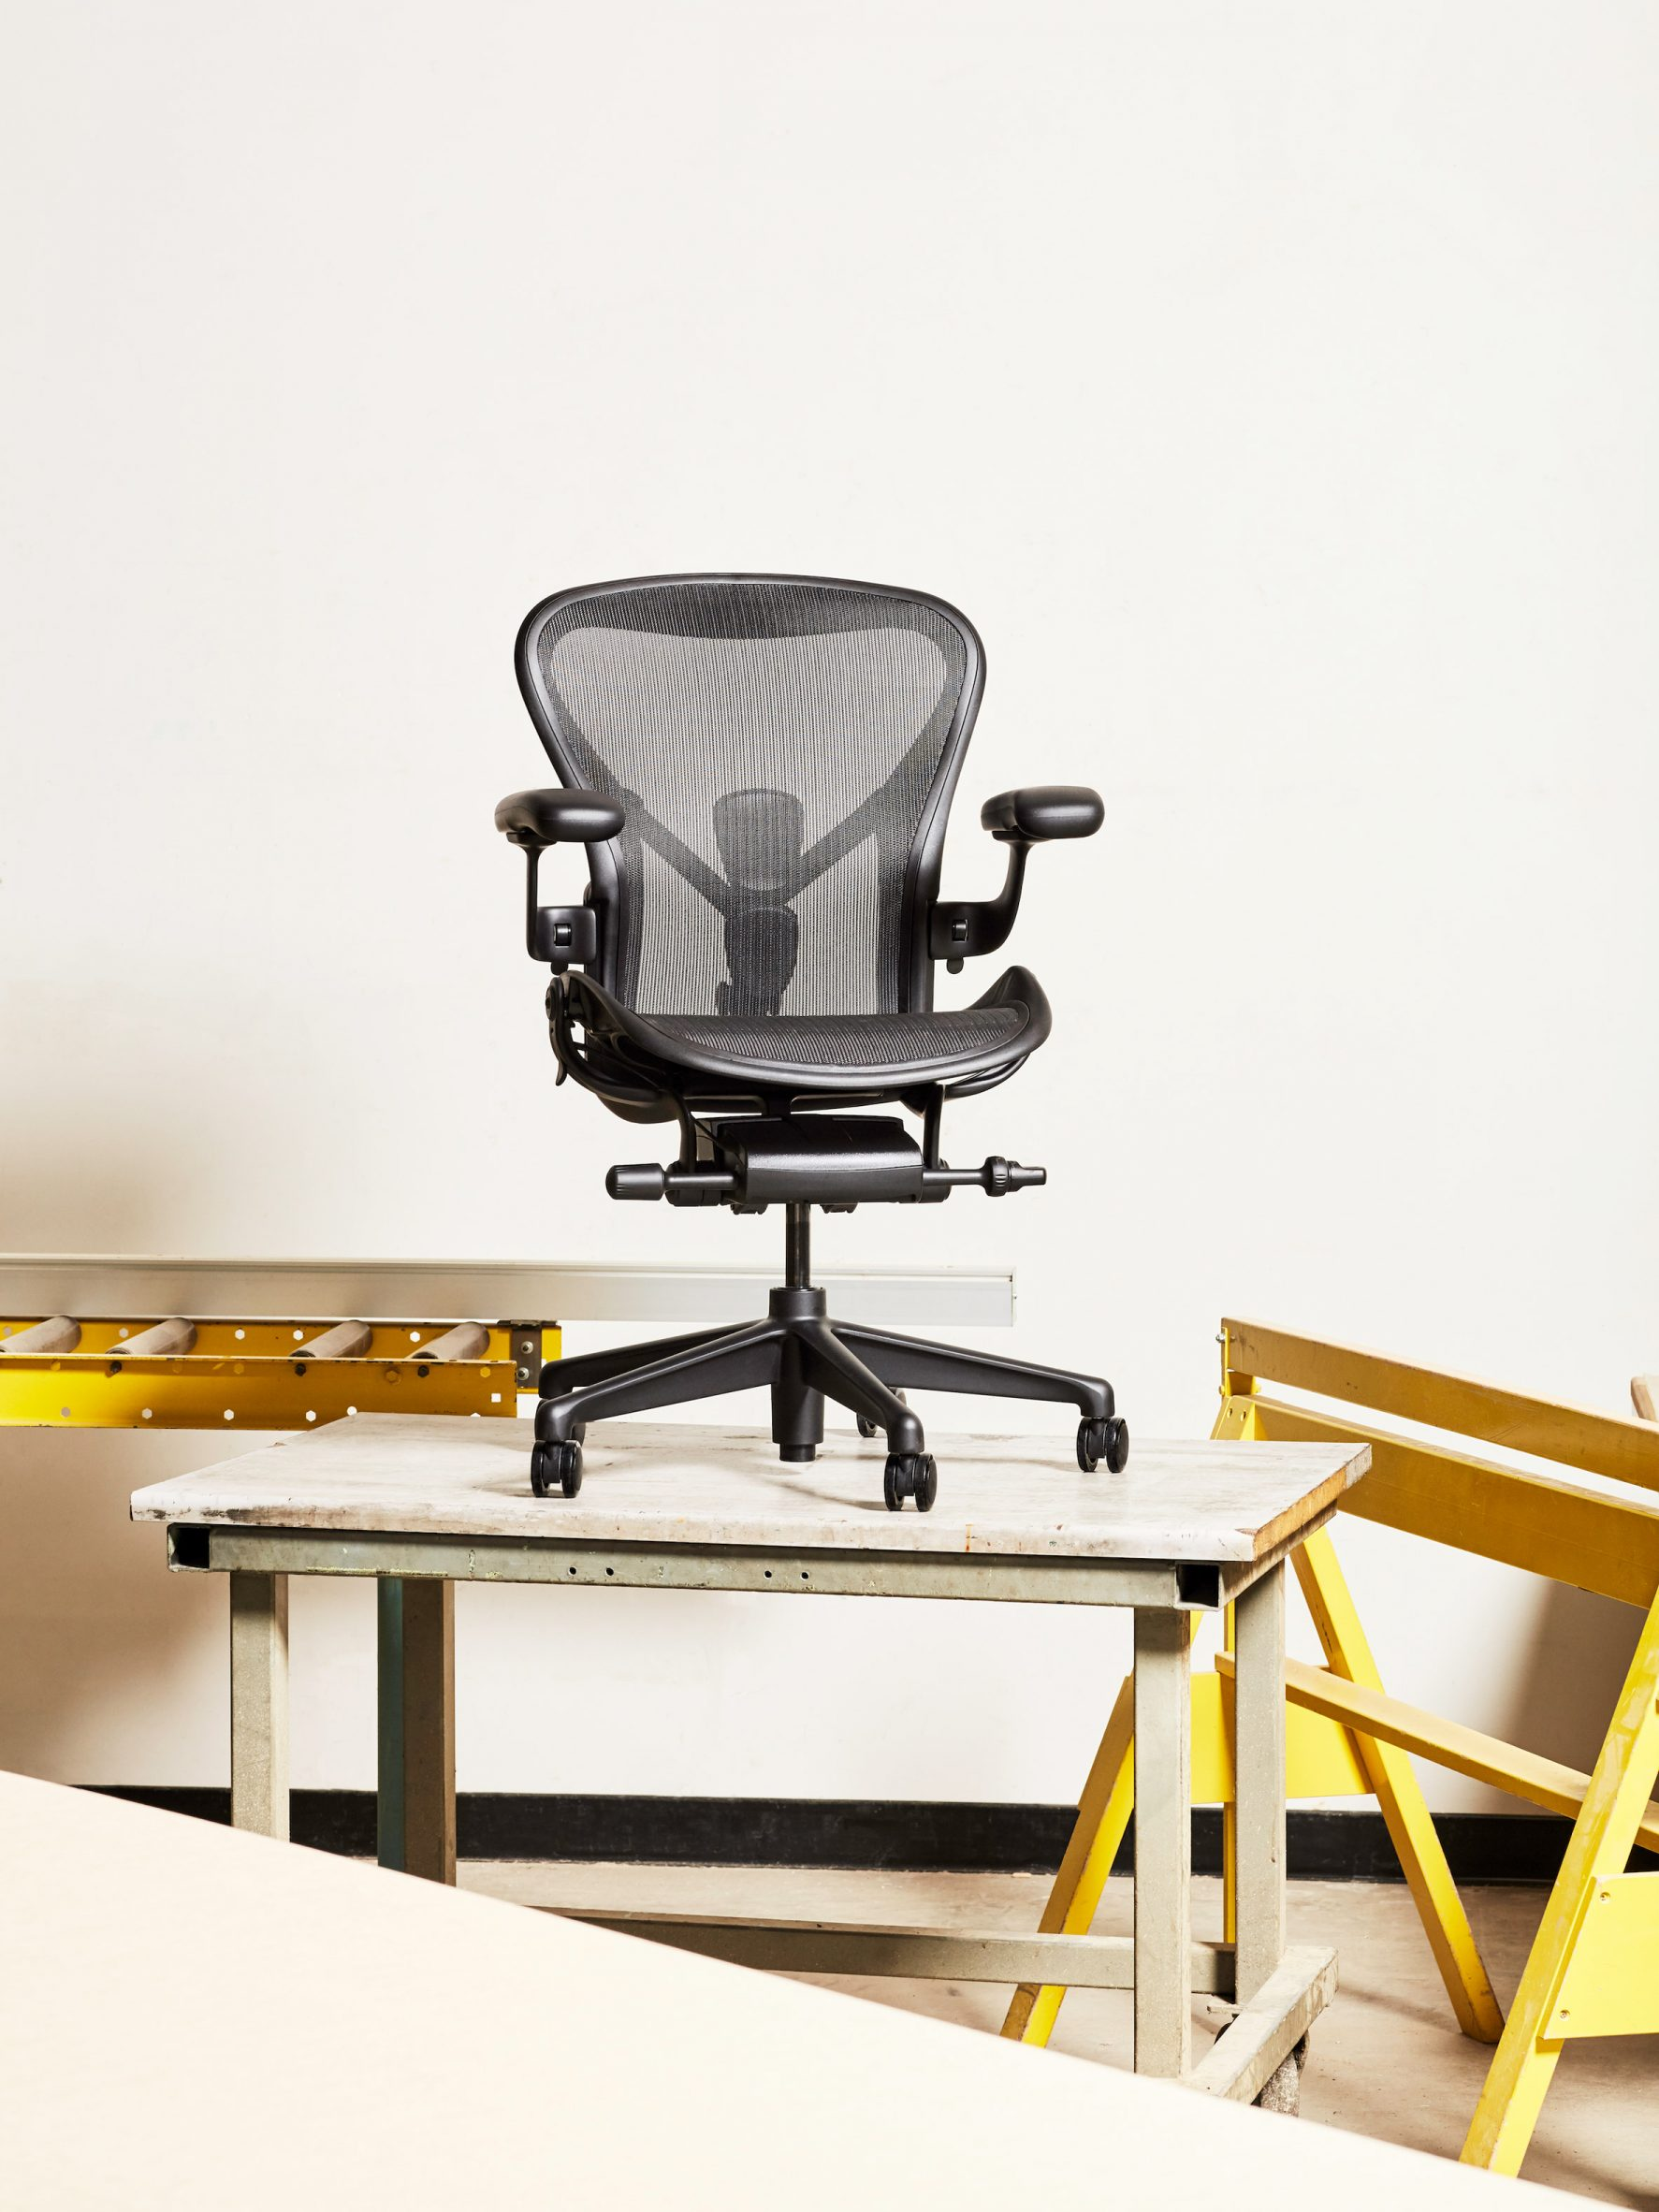 An office chair on top of a desk